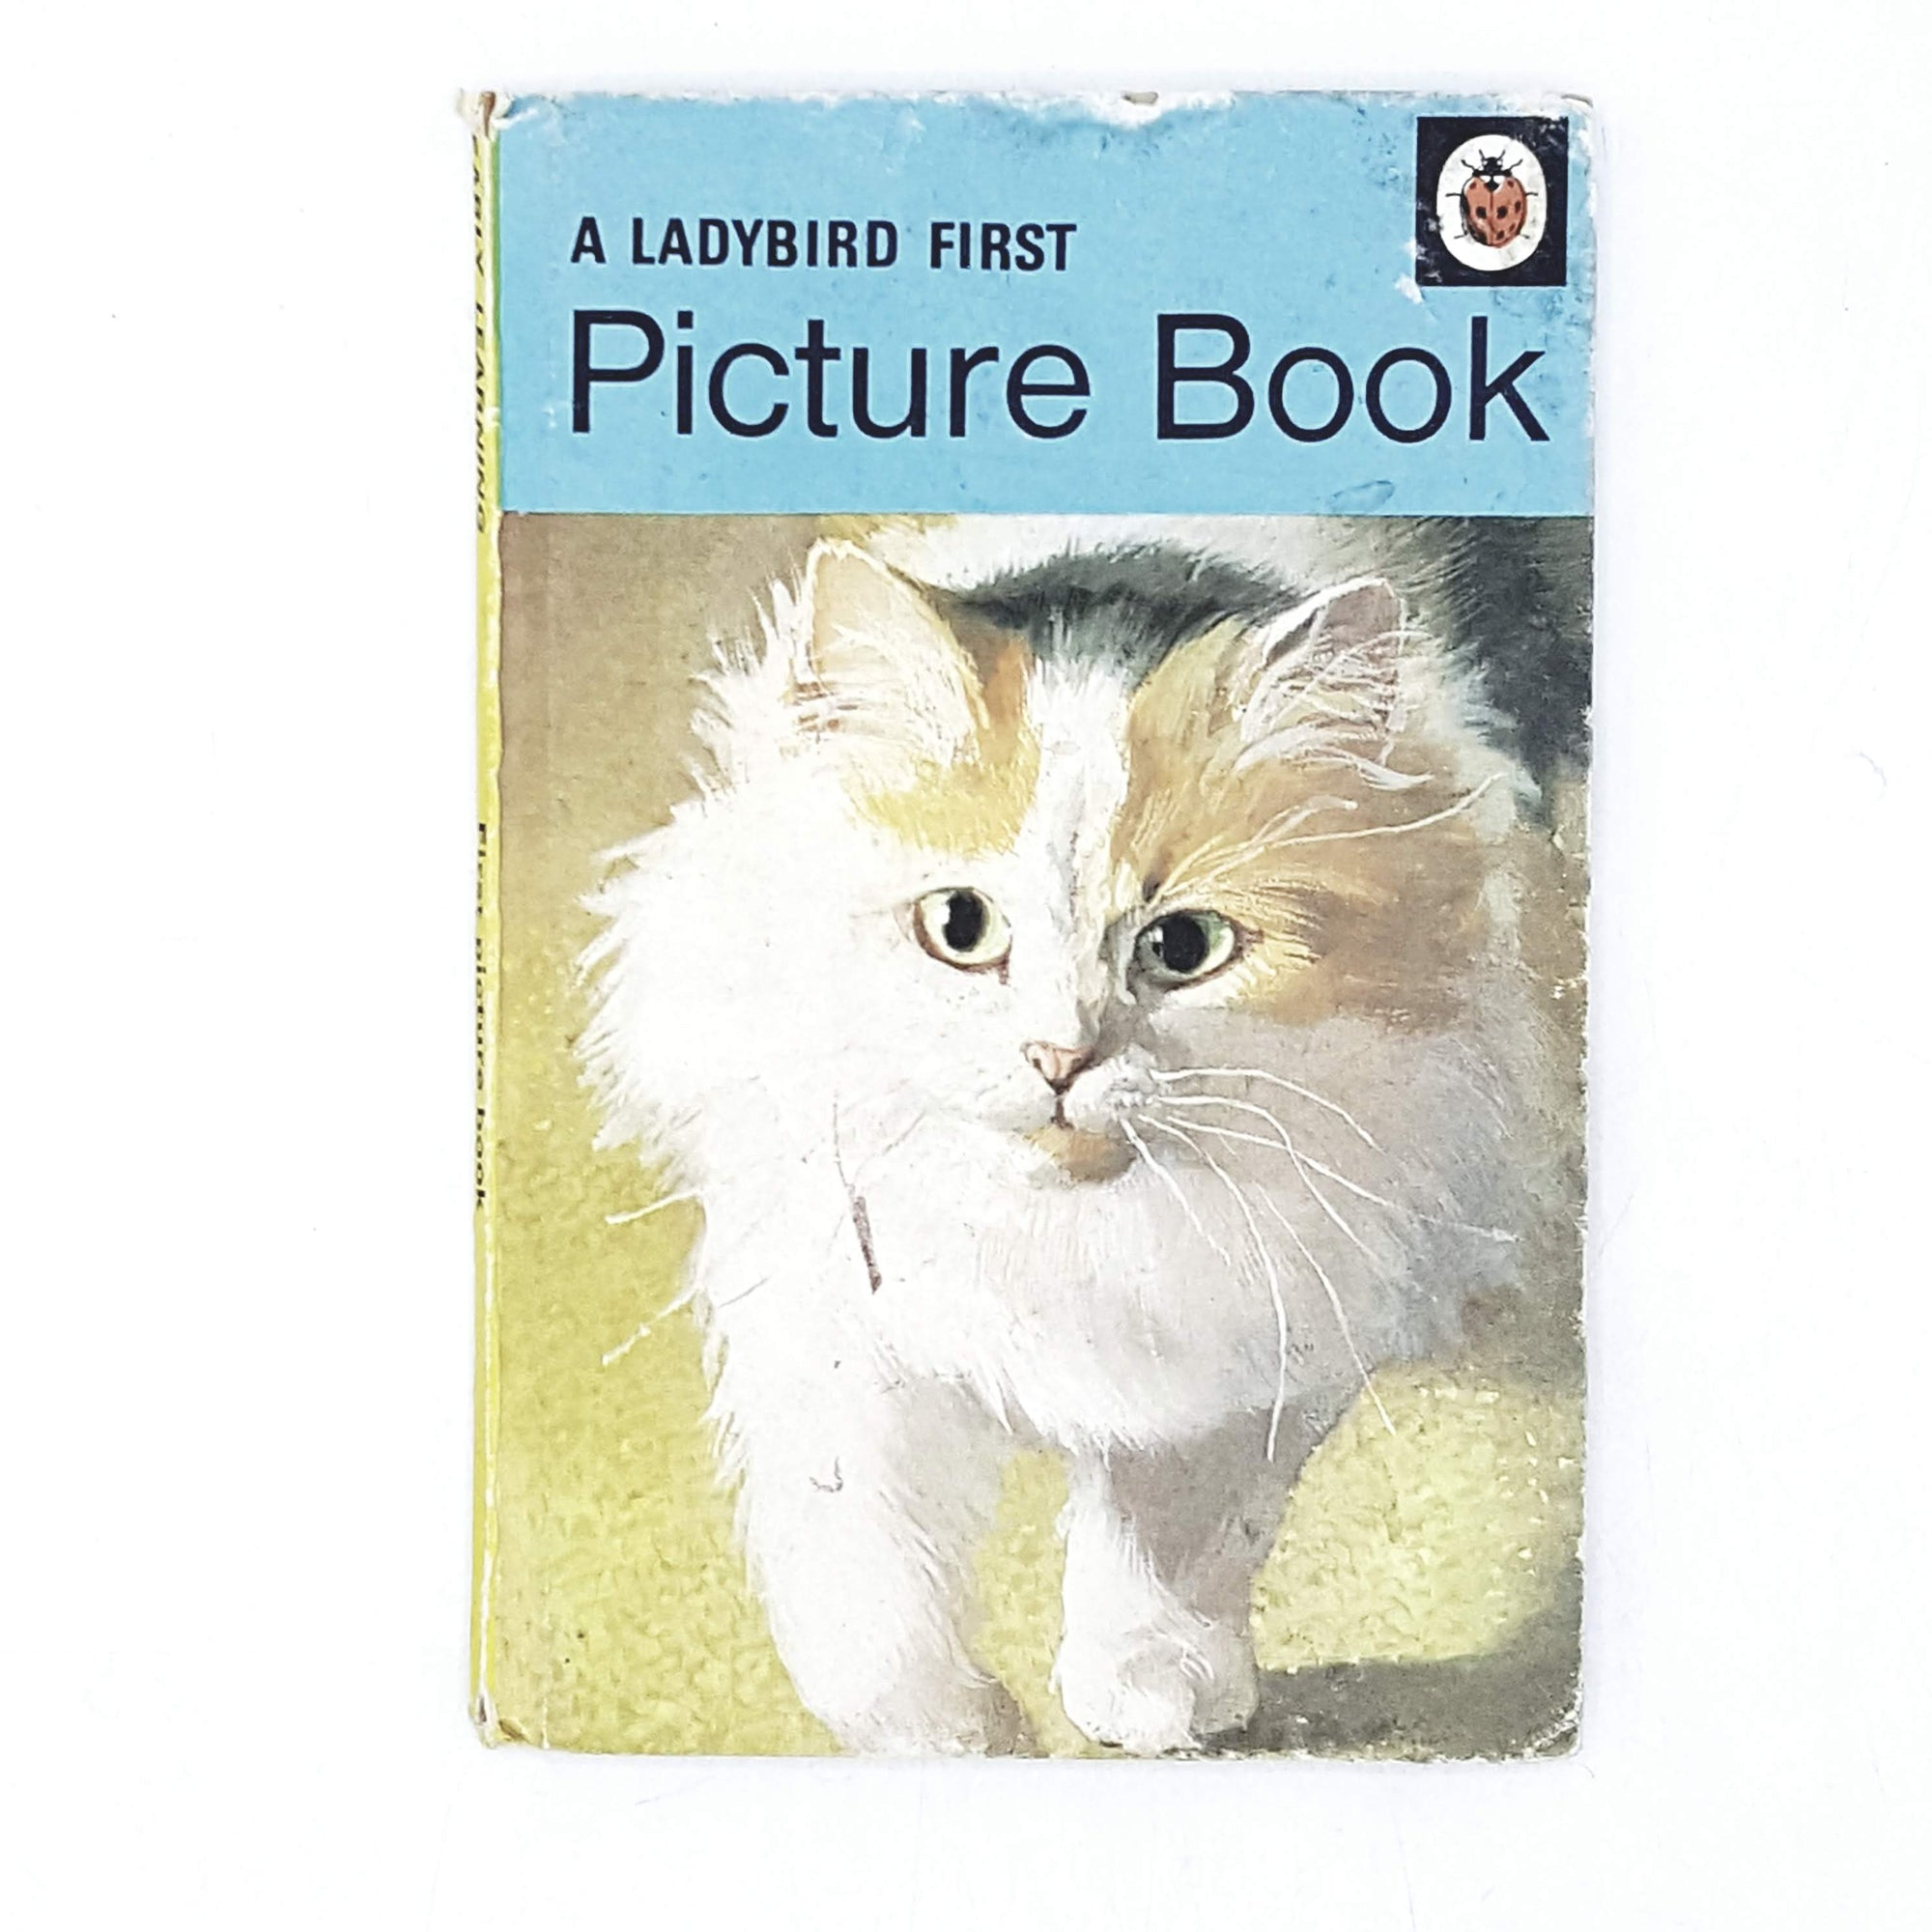 A Ladybird First Picture Book by Ethel Wingfield 1970